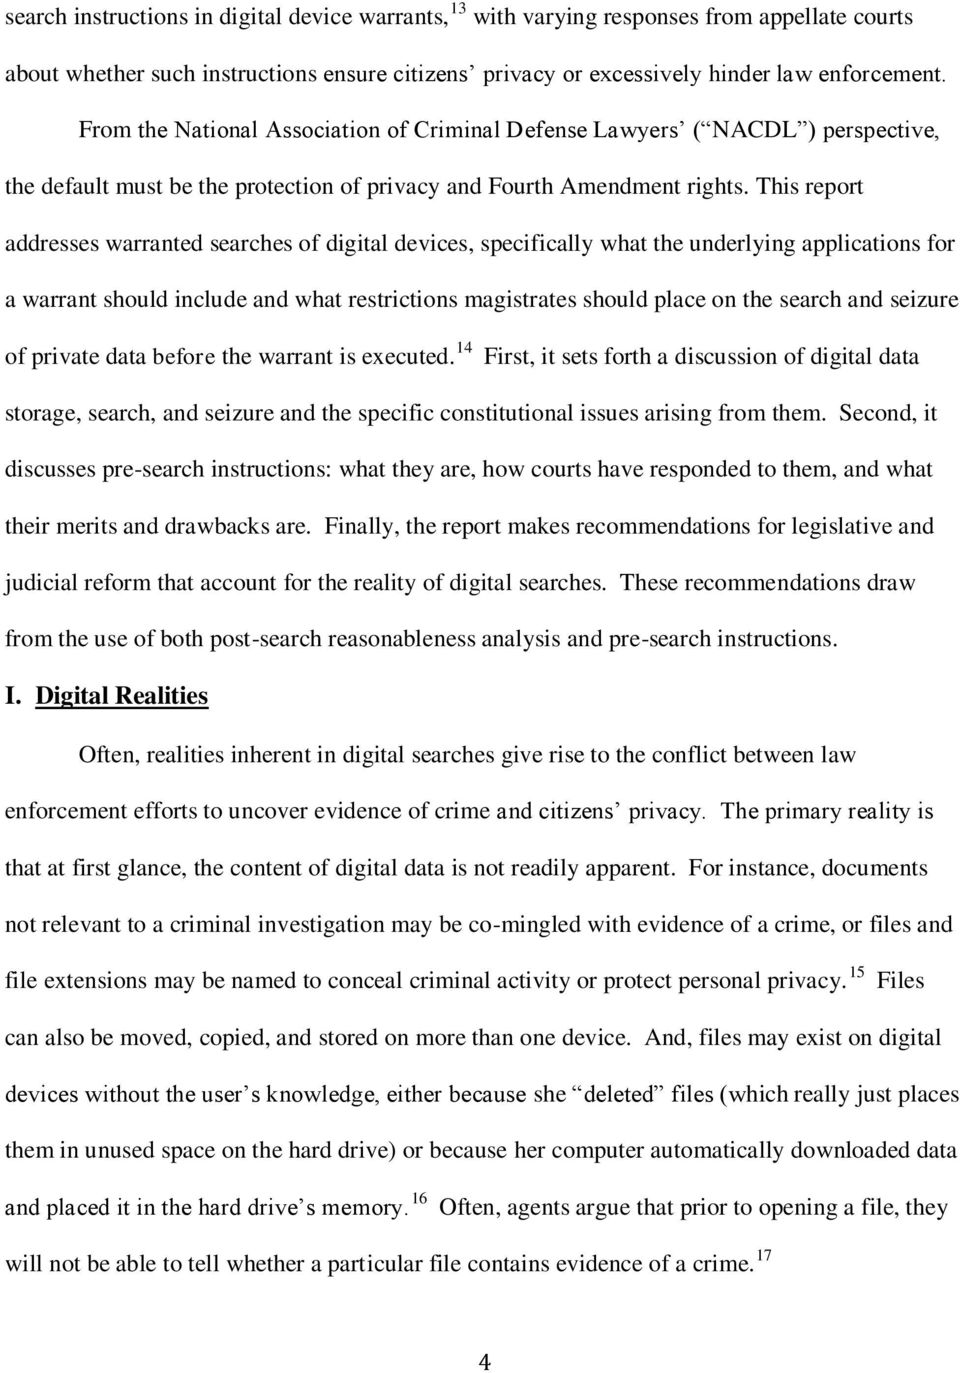 This report addresses warranted searches of digital devices, specifically what the underlying applications for a warrant should include and what restrictions magistrates should place on the search